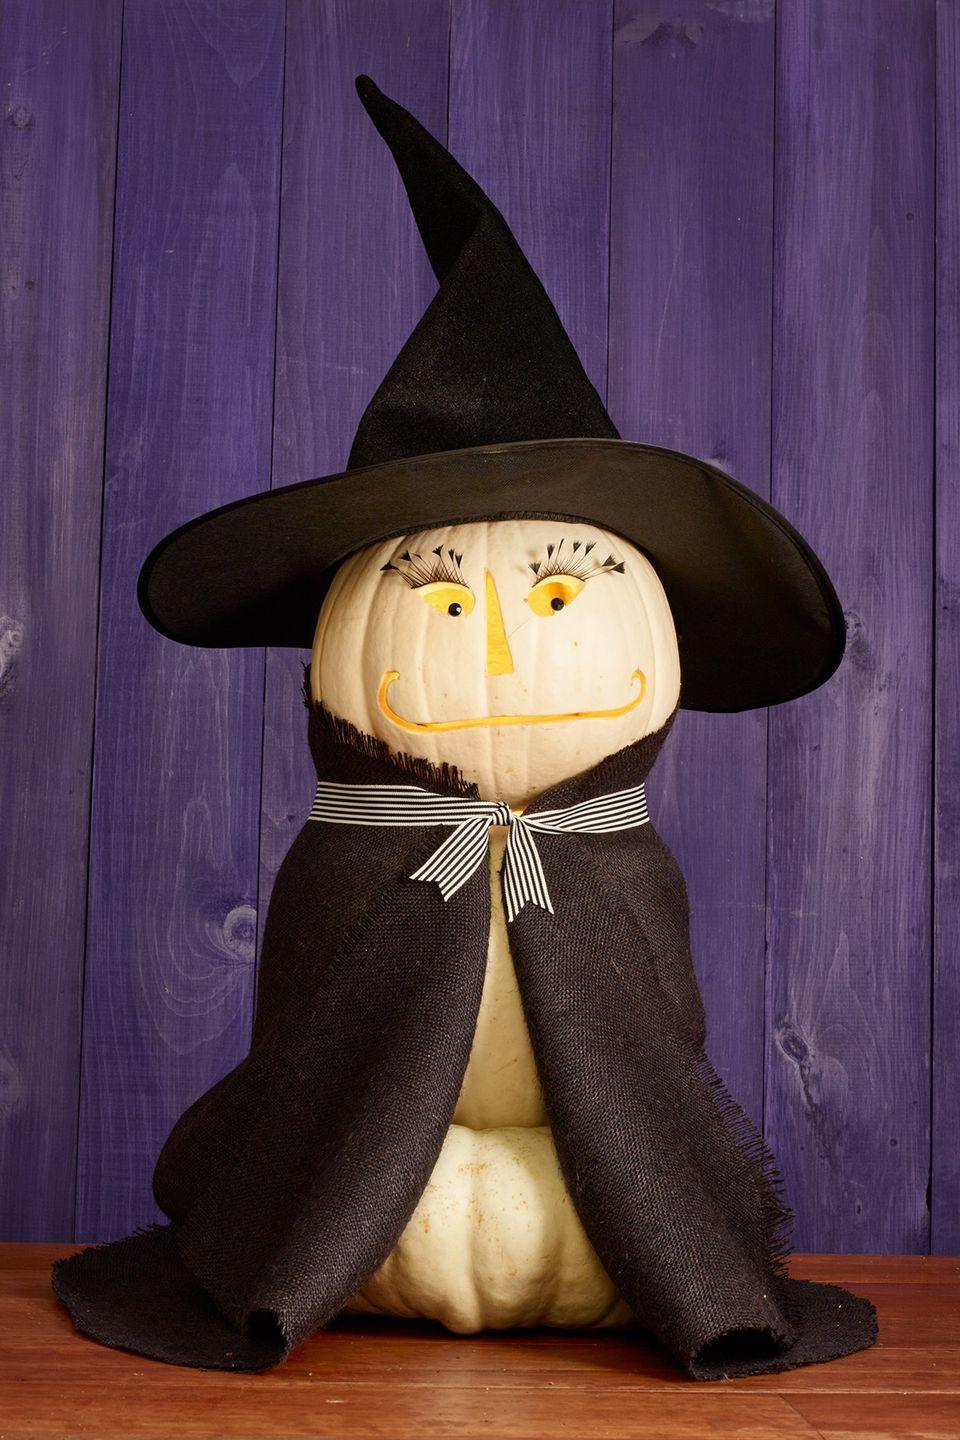 "<p>Set a sassy sorceress out front to welcome neighborhood night walkers. Glue on fake lashes to make this witch extra eye-catching! Carve eyes, nose, and mouth into white pumpkin. Hot-glue false eyelashes above eyes. Stack 2 more white pumpkins underneath, securing with skewers. Cut and wrap a half circle of black burlap around body for cloak; use straight pins to affix to body. Add a striped ribbon tie around neck and embellish black witch hat with same striped ribbon.<br></p><p><strong>What You'll Need: </strong><a href=""https://www.amazon.com/BEPHOLAN-Reusable-Handmade-Eyelashes-Natural/dp/B0788CKQ8G/?tag=syn-yahoo-20&ascsubtag=%5Bartid%7C10070.g.950%5Bsrc%7Cyahoo-us"" rel=""nofollow noopener"" target=""_blank"" data-ylk=""slk:Fake lashes"" class=""link rapid-noclick-resp"">Fake lashes</a> ($7 for 3 sets, Amazon); <a href=""https://www.amazon.com/James-Thompson-Sultana-Burlap-Fabric/dp/B014UZF578/?tag=syn-yahoo-20&ascsubtag=%5Bartid%7C10070.g.950%5Bsrc%7Cyahoo-us"" rel=""nofollow noopener"" target=""_blank"" data-ylk=""slk:black burlap"" class=""link rapid-noclick-resp"">black burlap</a> ($6, Amazon)</p>"